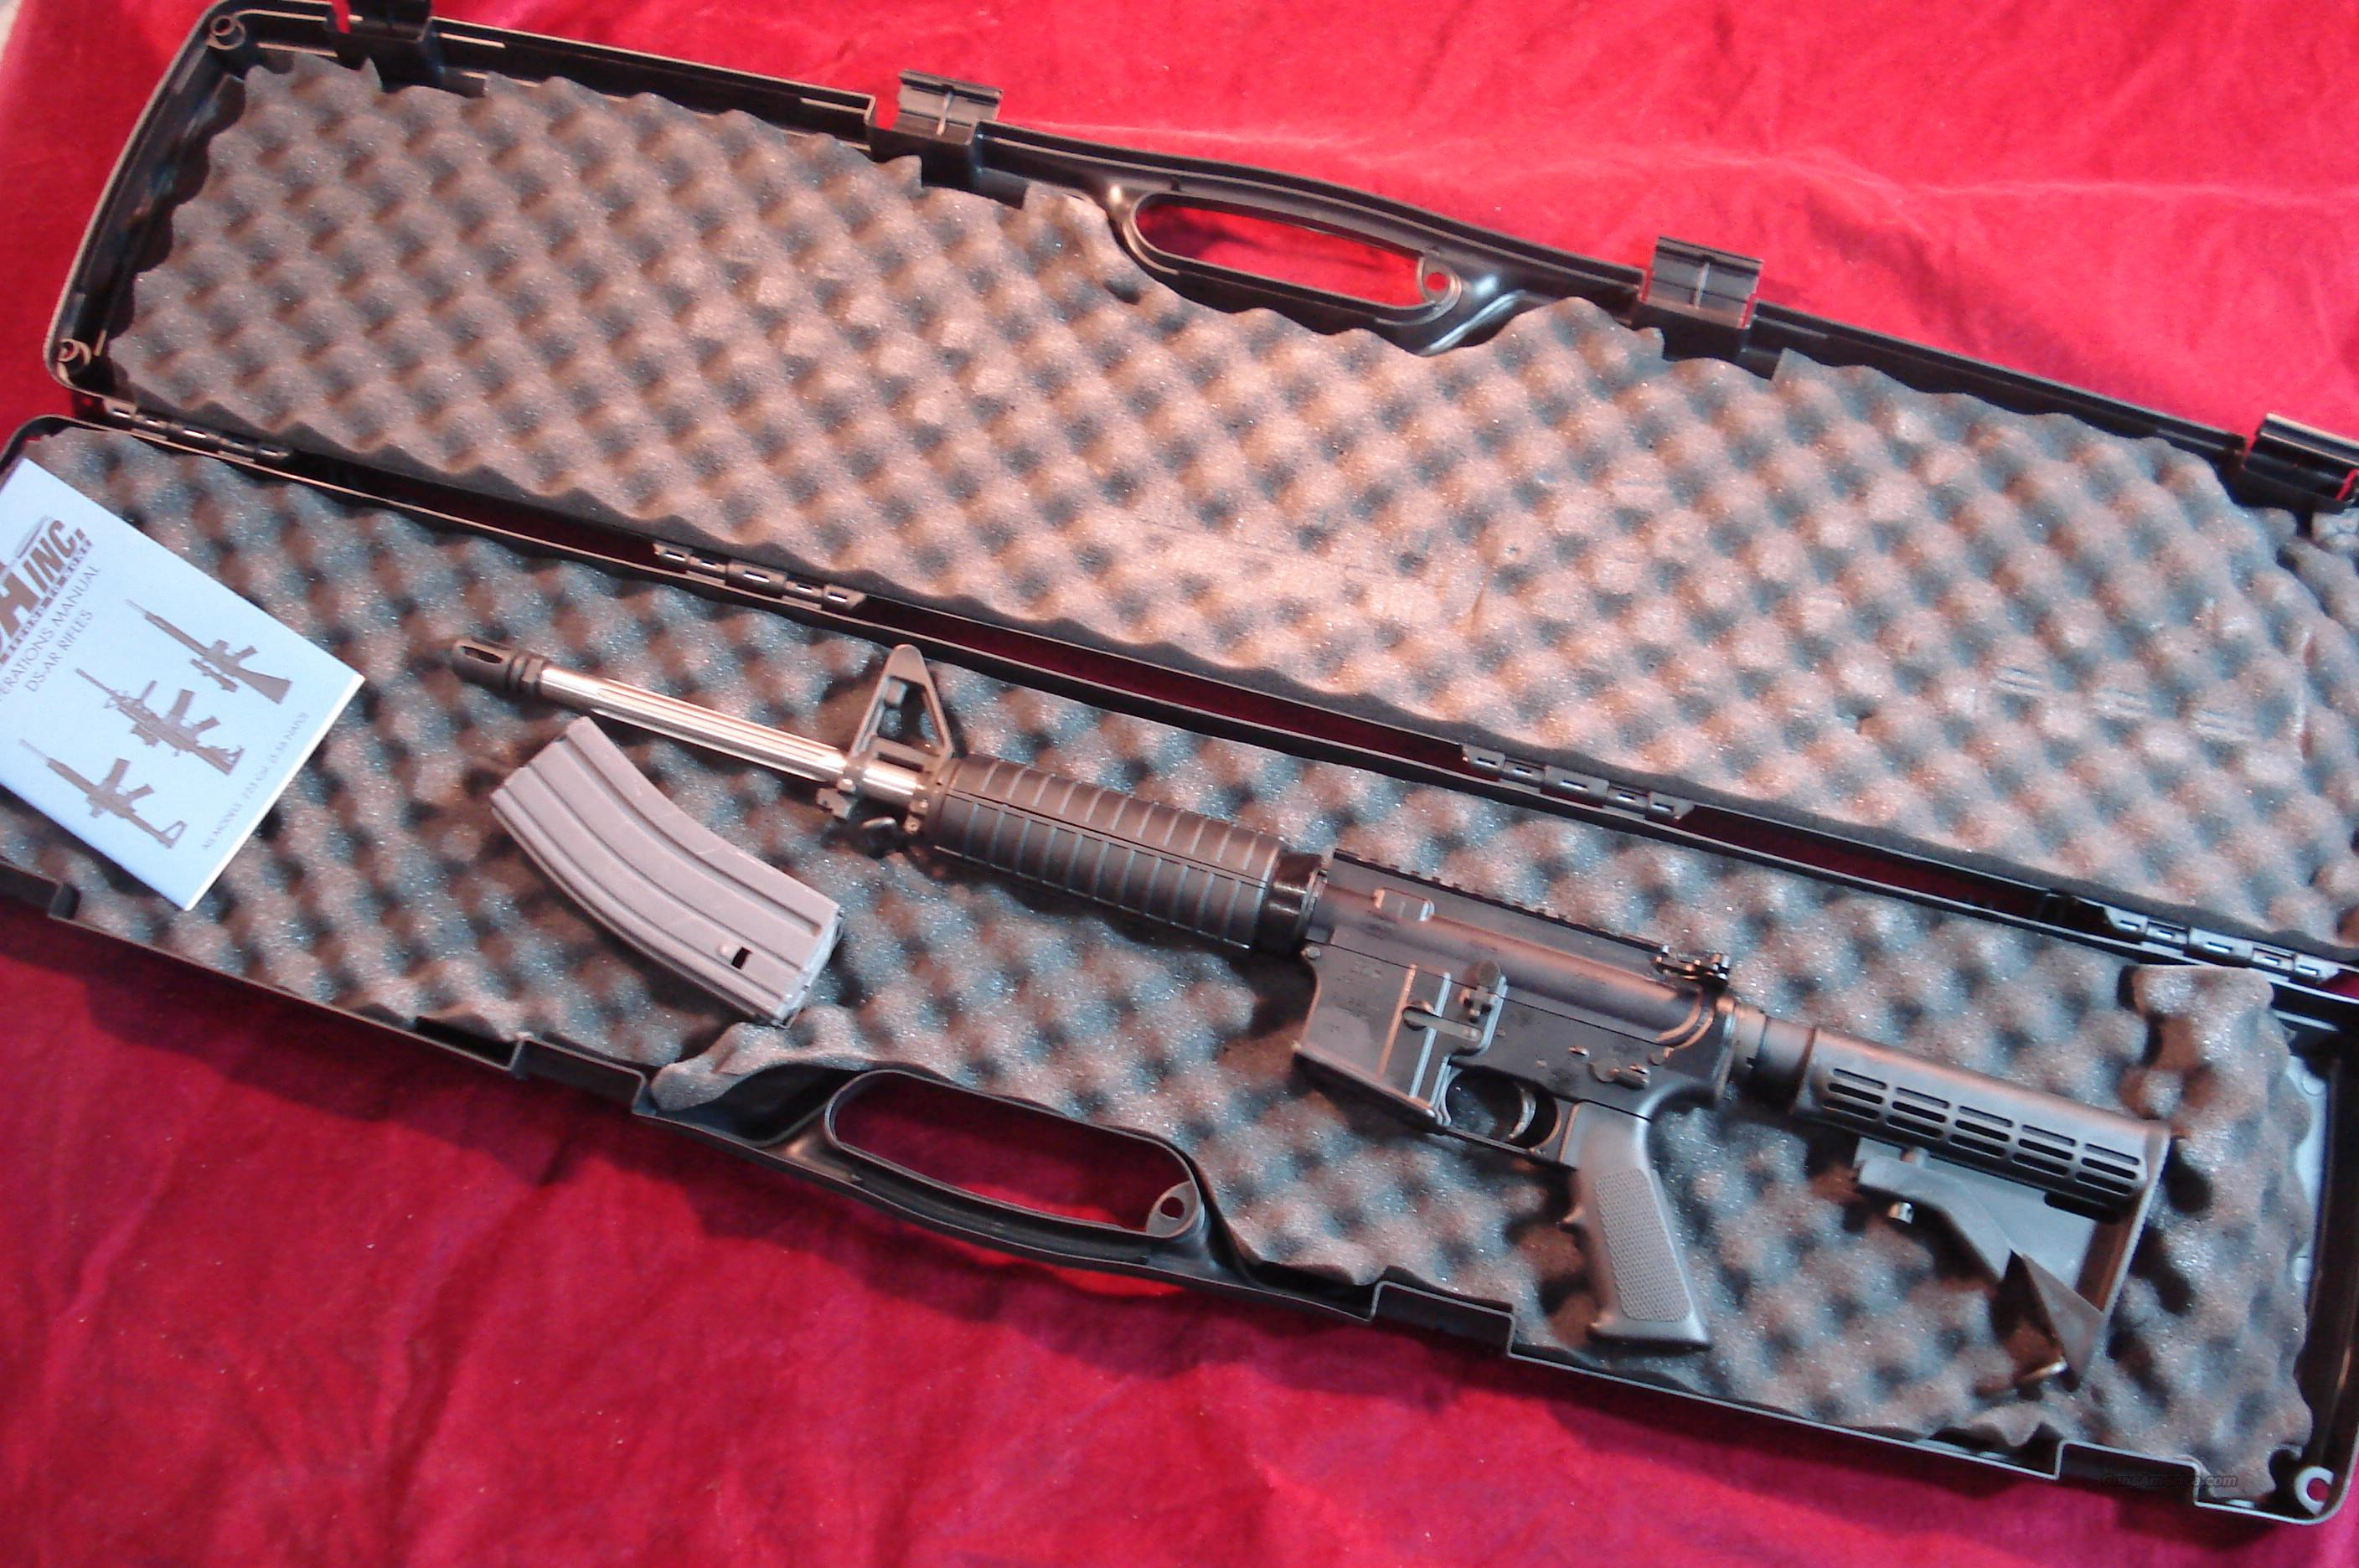 DSA ARMS AR15 FLATTOP 5.56CAL. FLUTTED STAINLESS BRL. NEW   Guns > Rifles > DSA Rifles (DS Arms) > AR-15 type